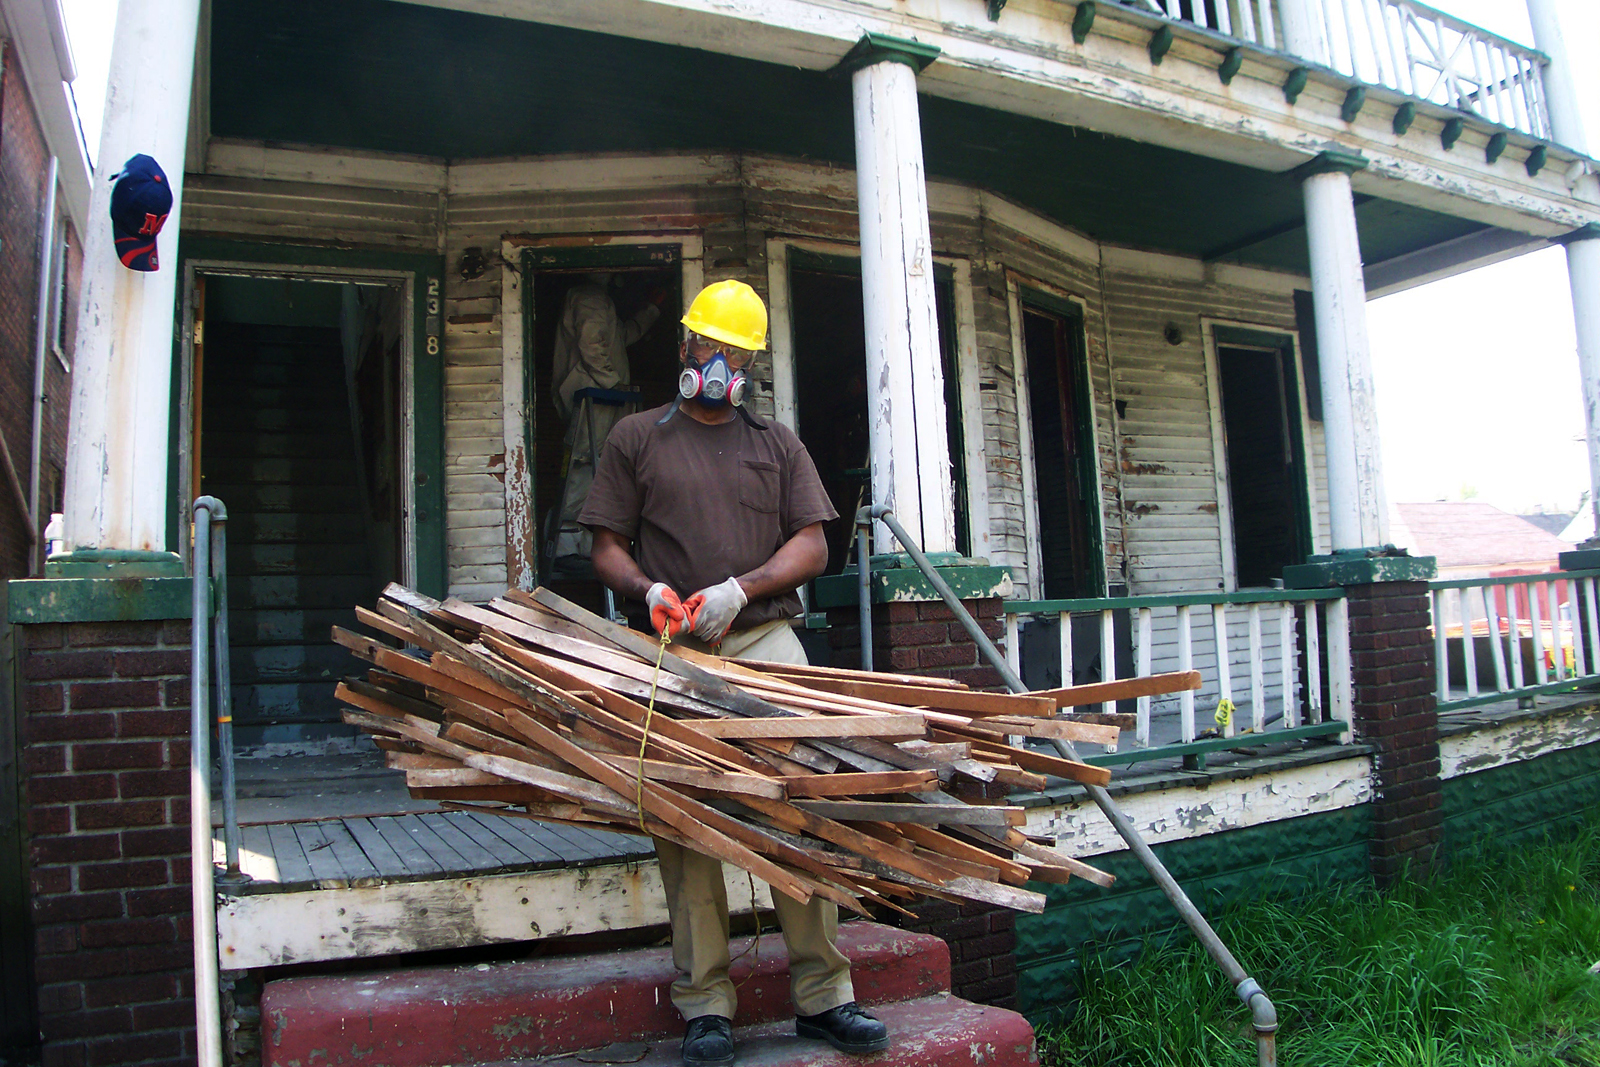 A worker from Reclaim Detroit salvages wood from a vacant home.  Image Courtesy of Reclaim Detroit.